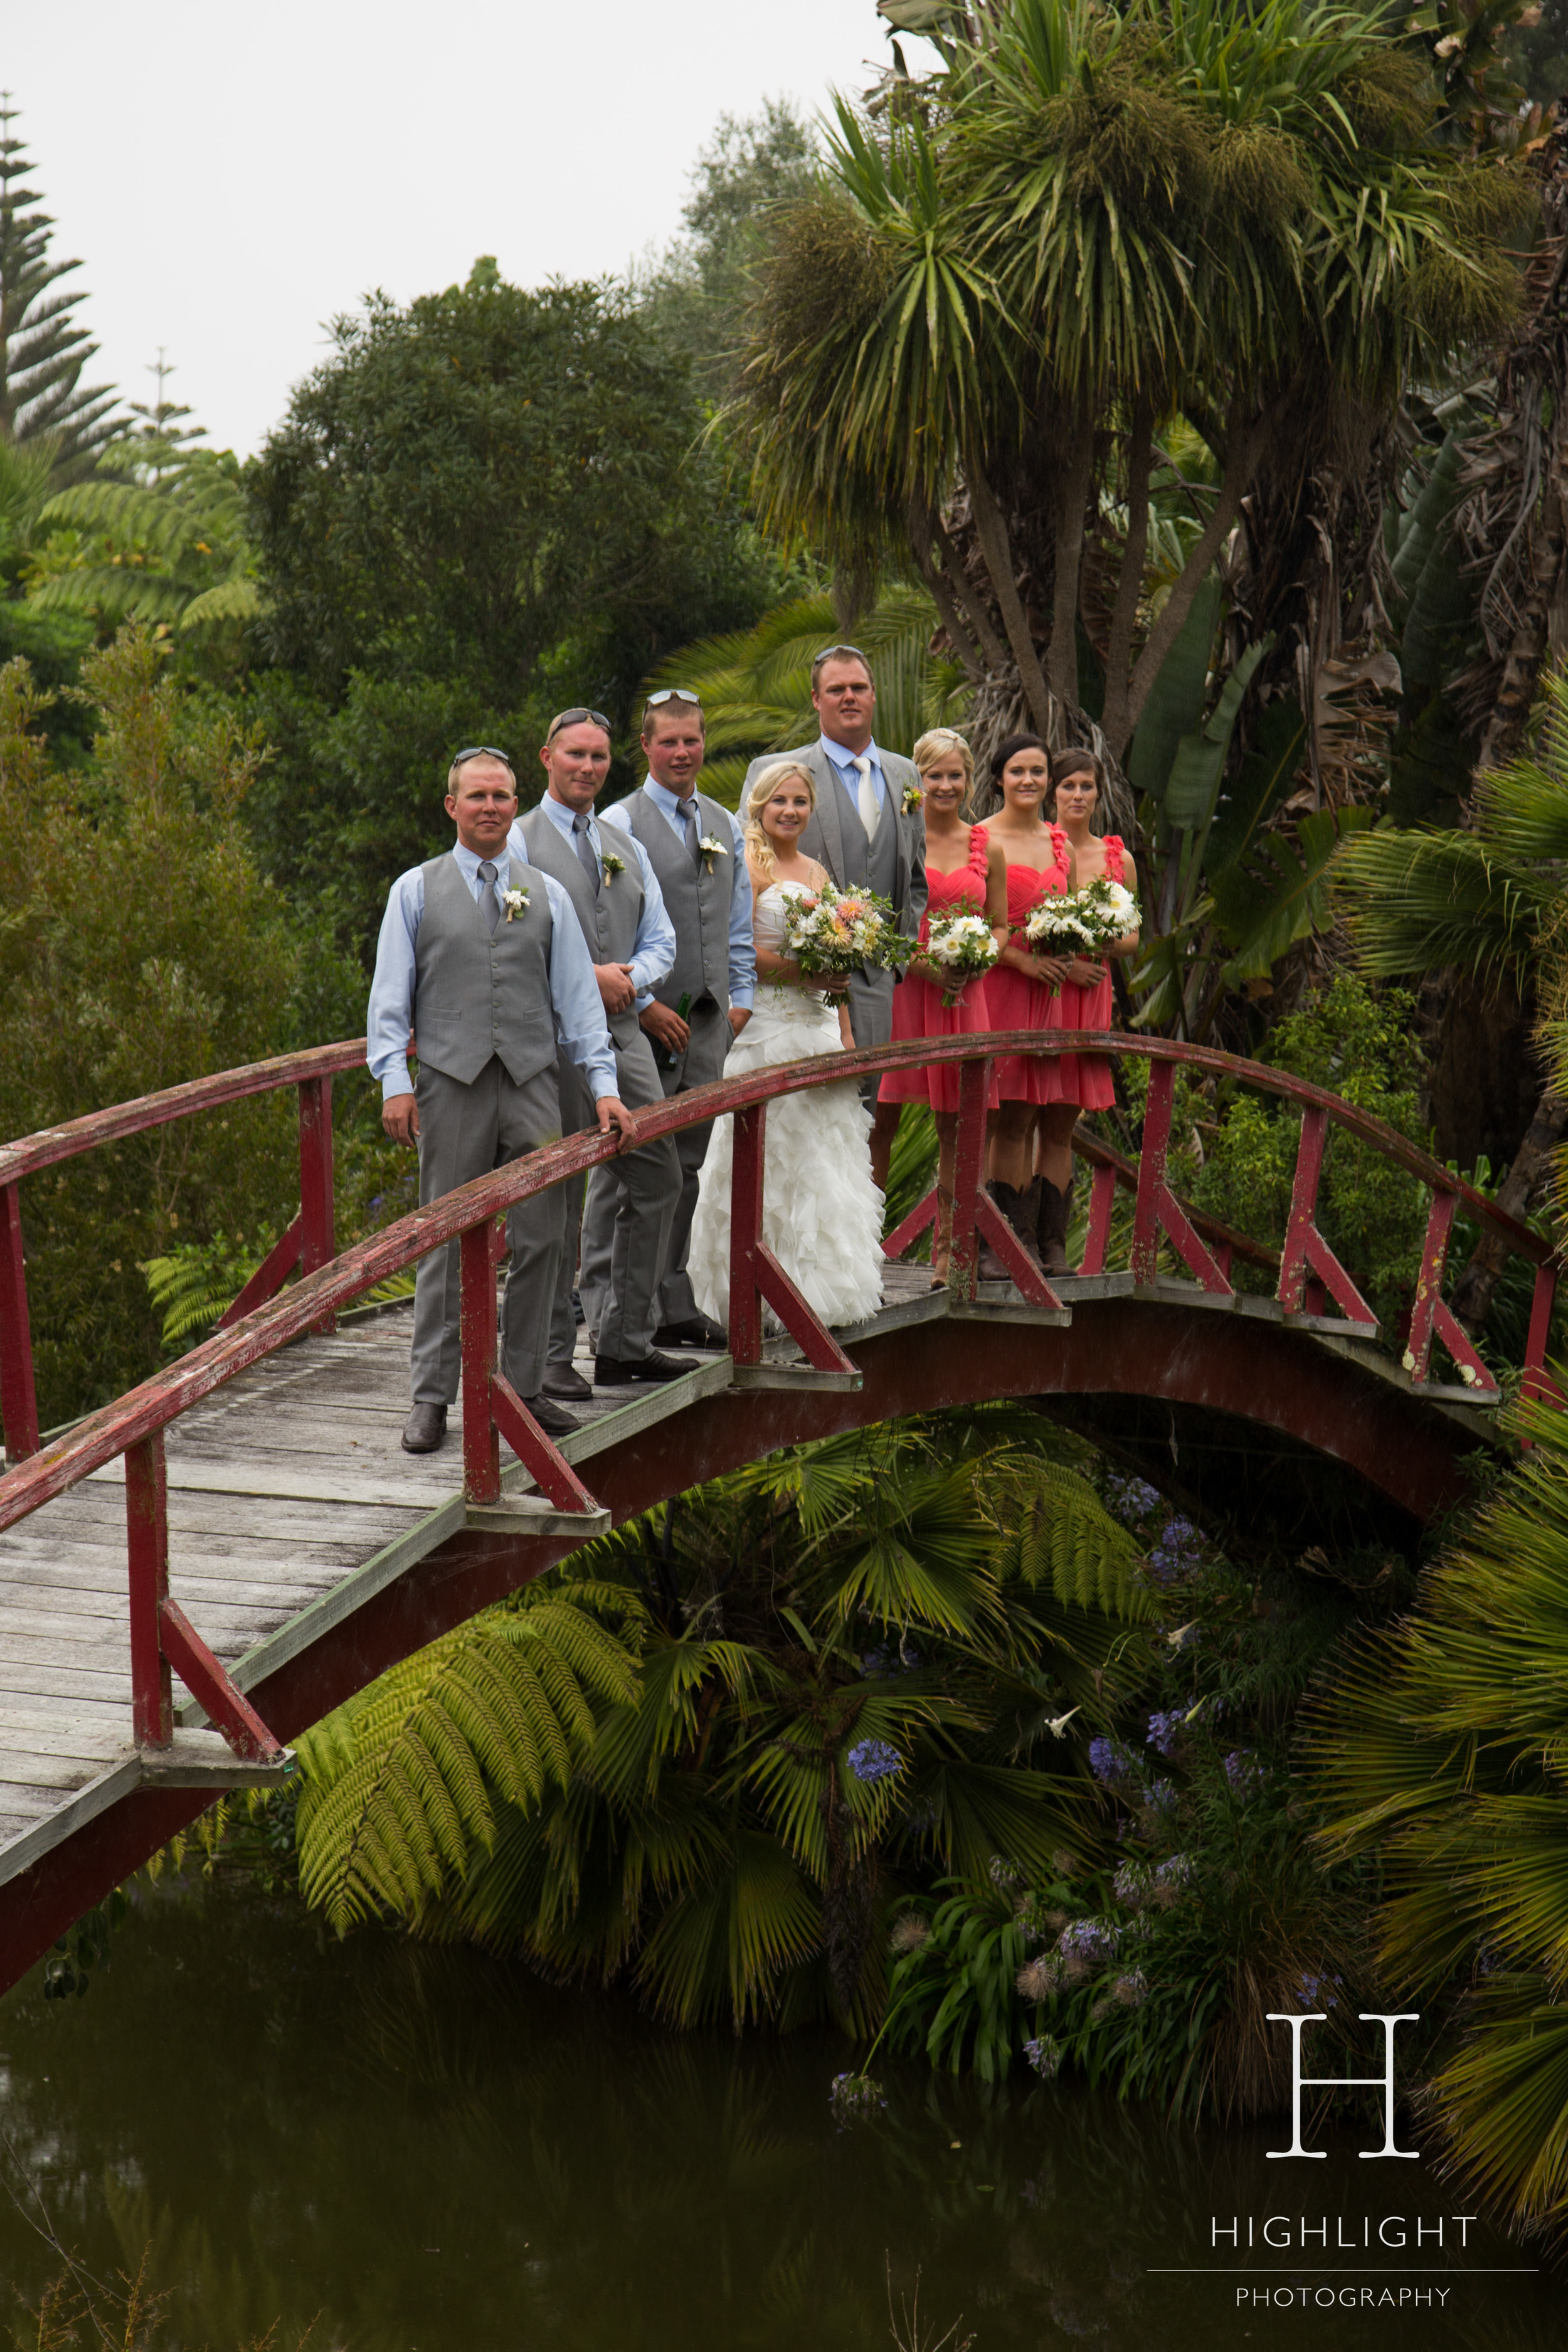 highlight_photography_wedding_new_zealand_ceremony.jpg